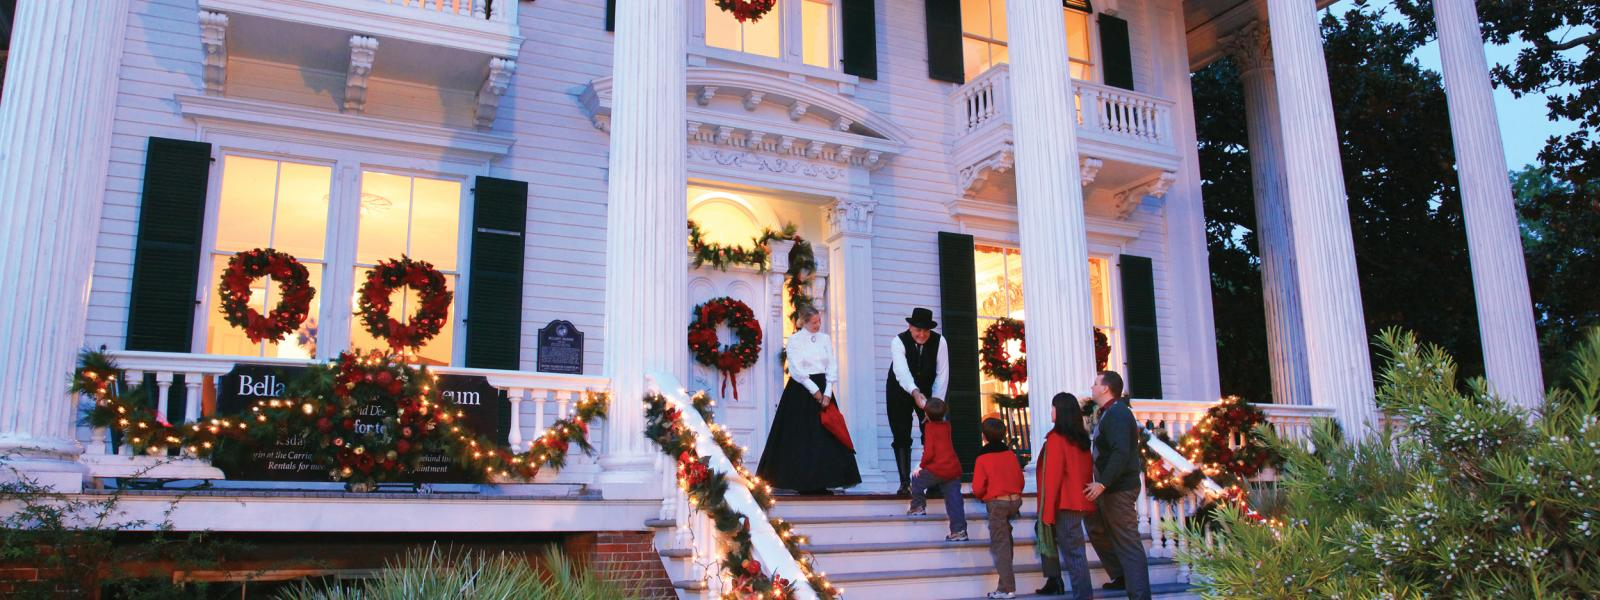 holiday events in wilmington north carolina 4th of july. Black Bedroom Furniture Sets. Home Design Ideas